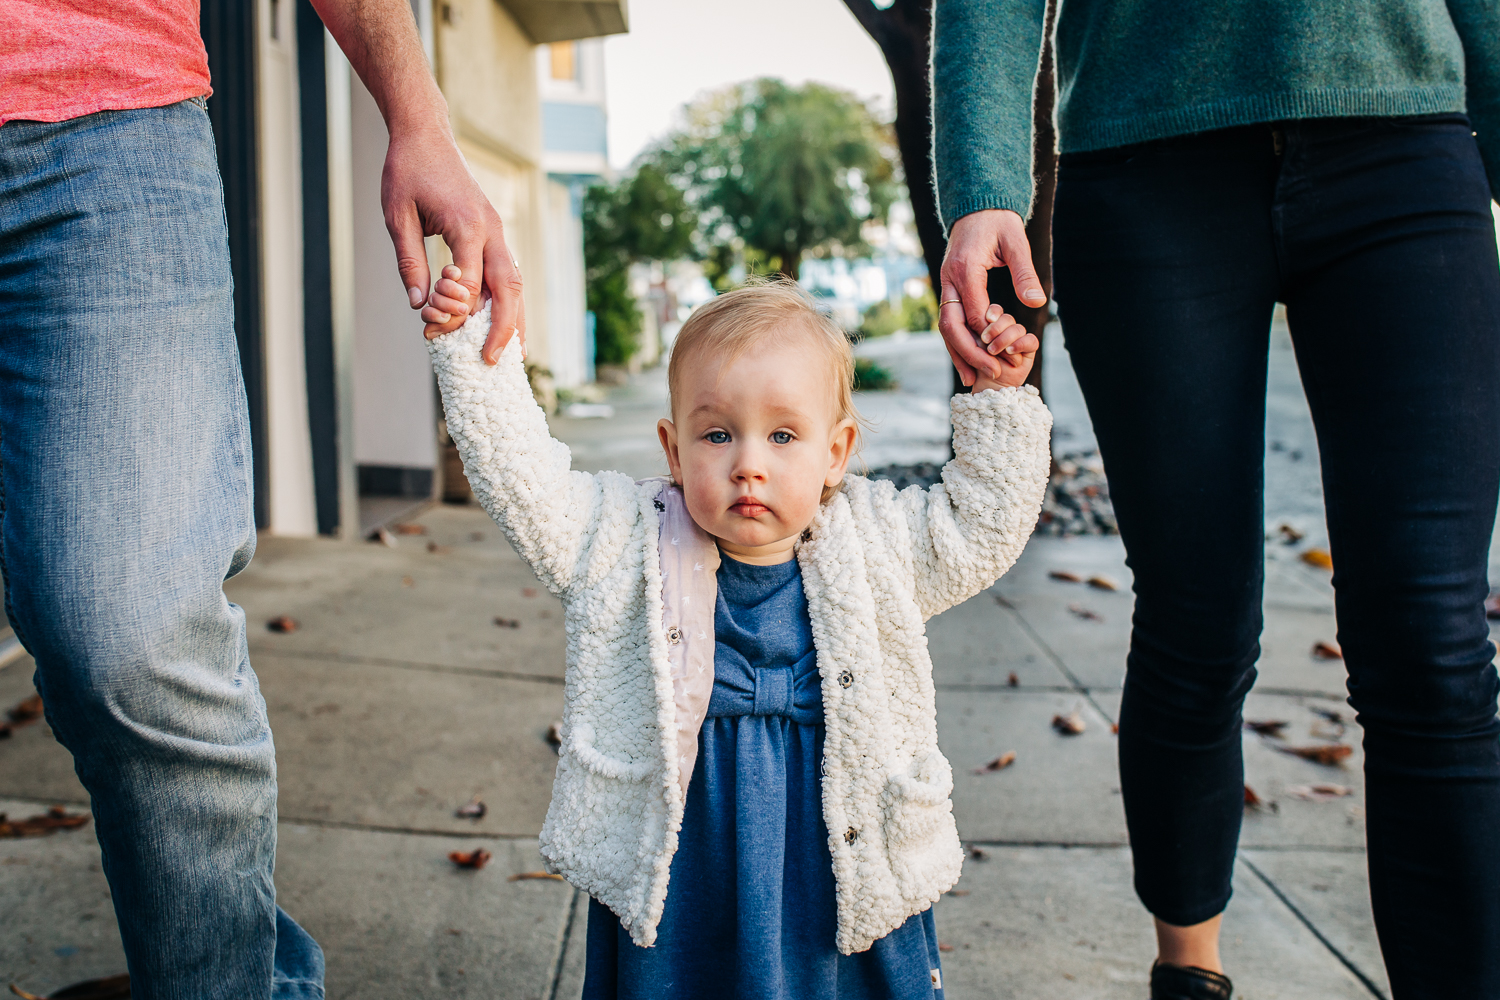 Baby walking down the street holding her parents hands | San Francisco Photographer